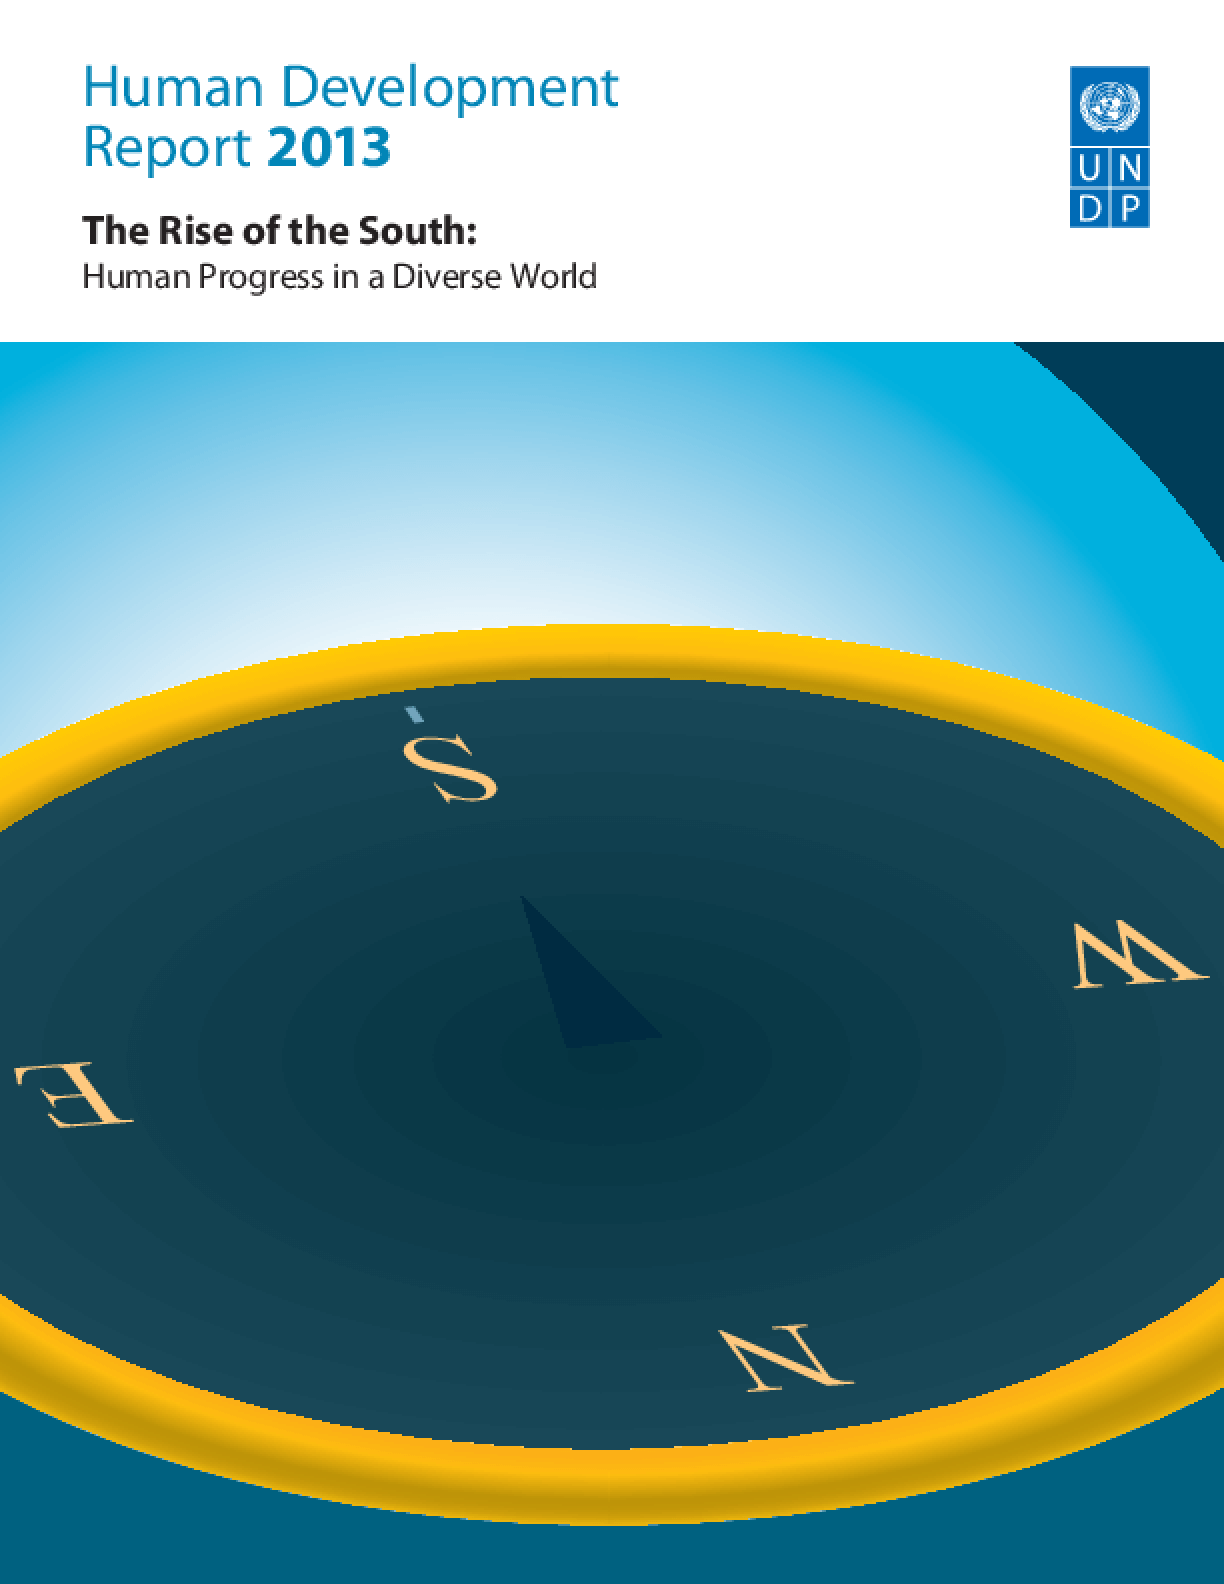 Human Development Report 2013 - The Rise of the South: Human Progress in a Diverse World